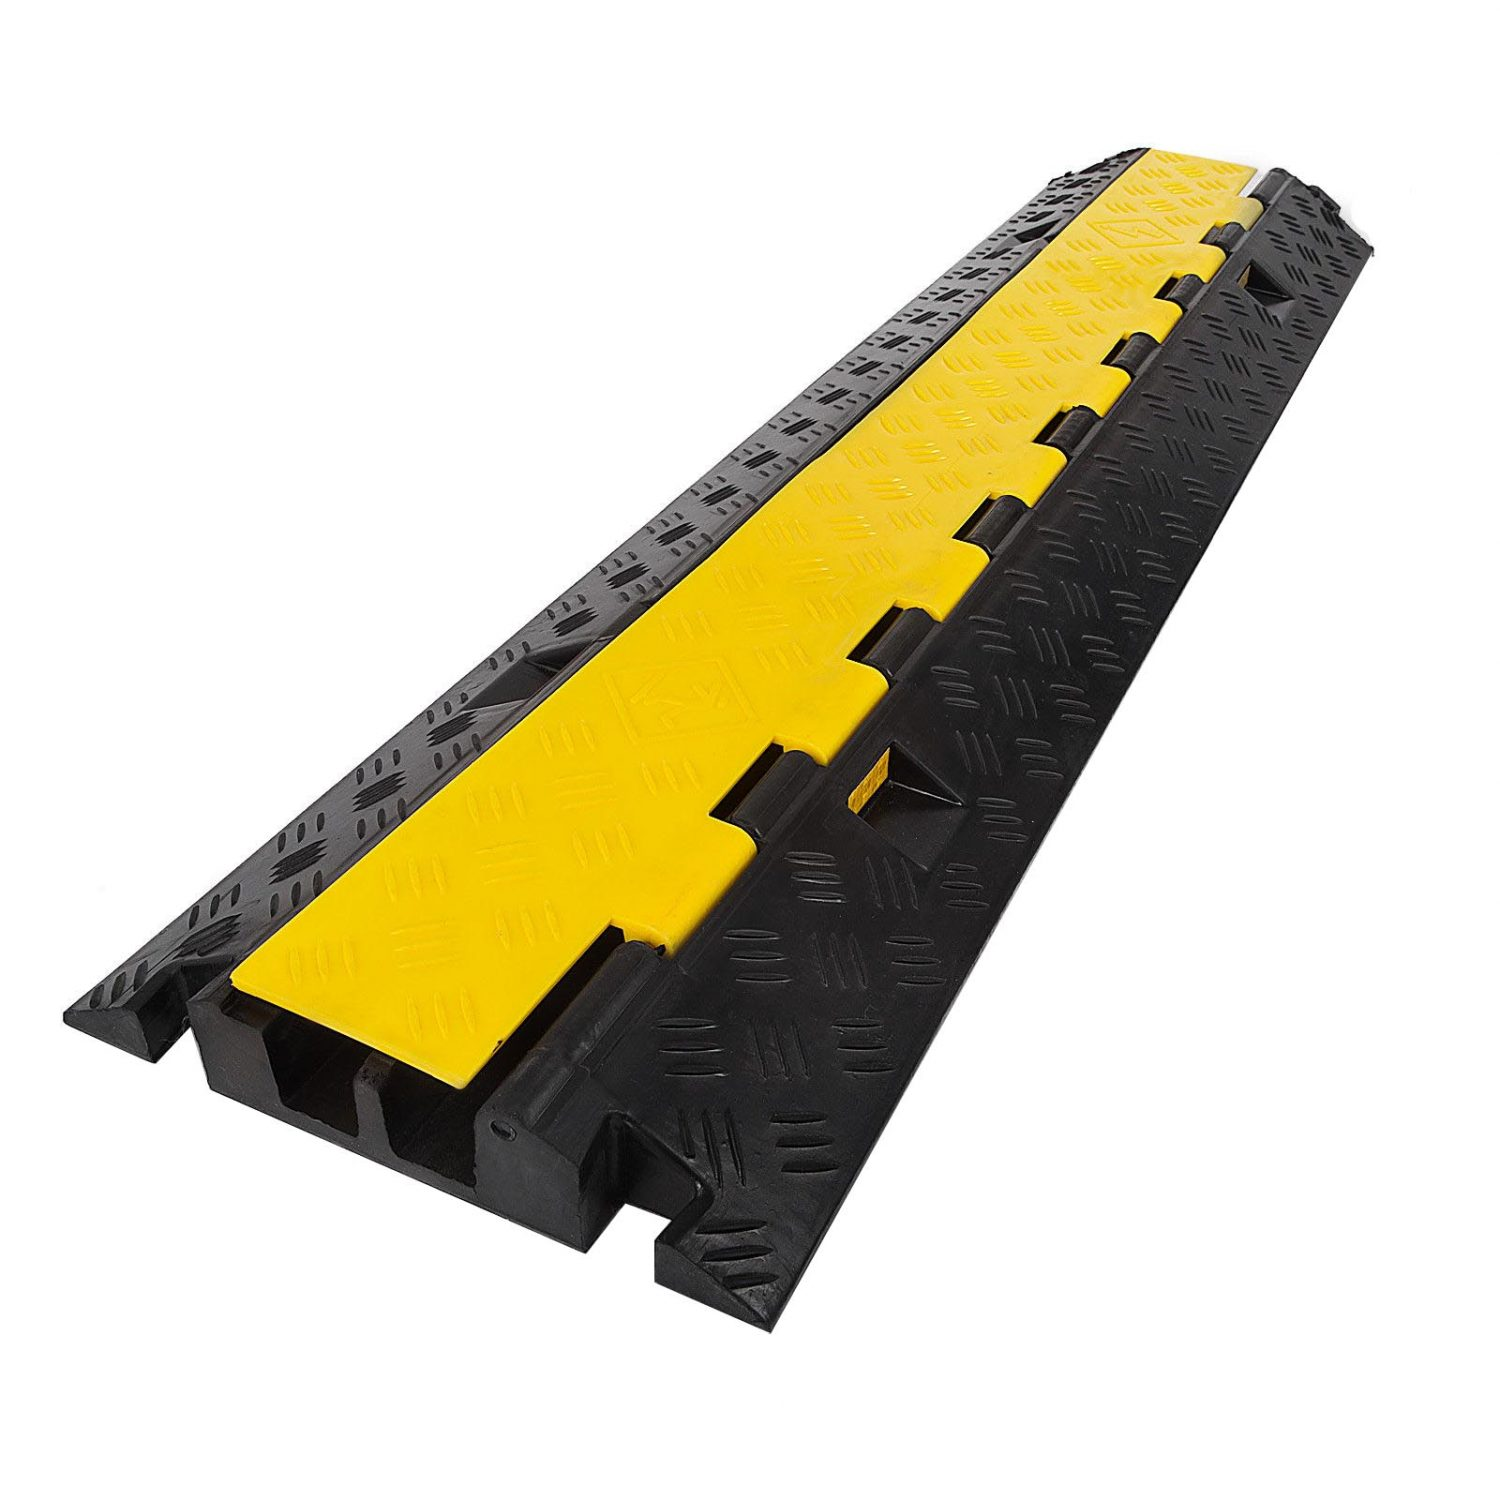 Cable Ramps hire melbourne